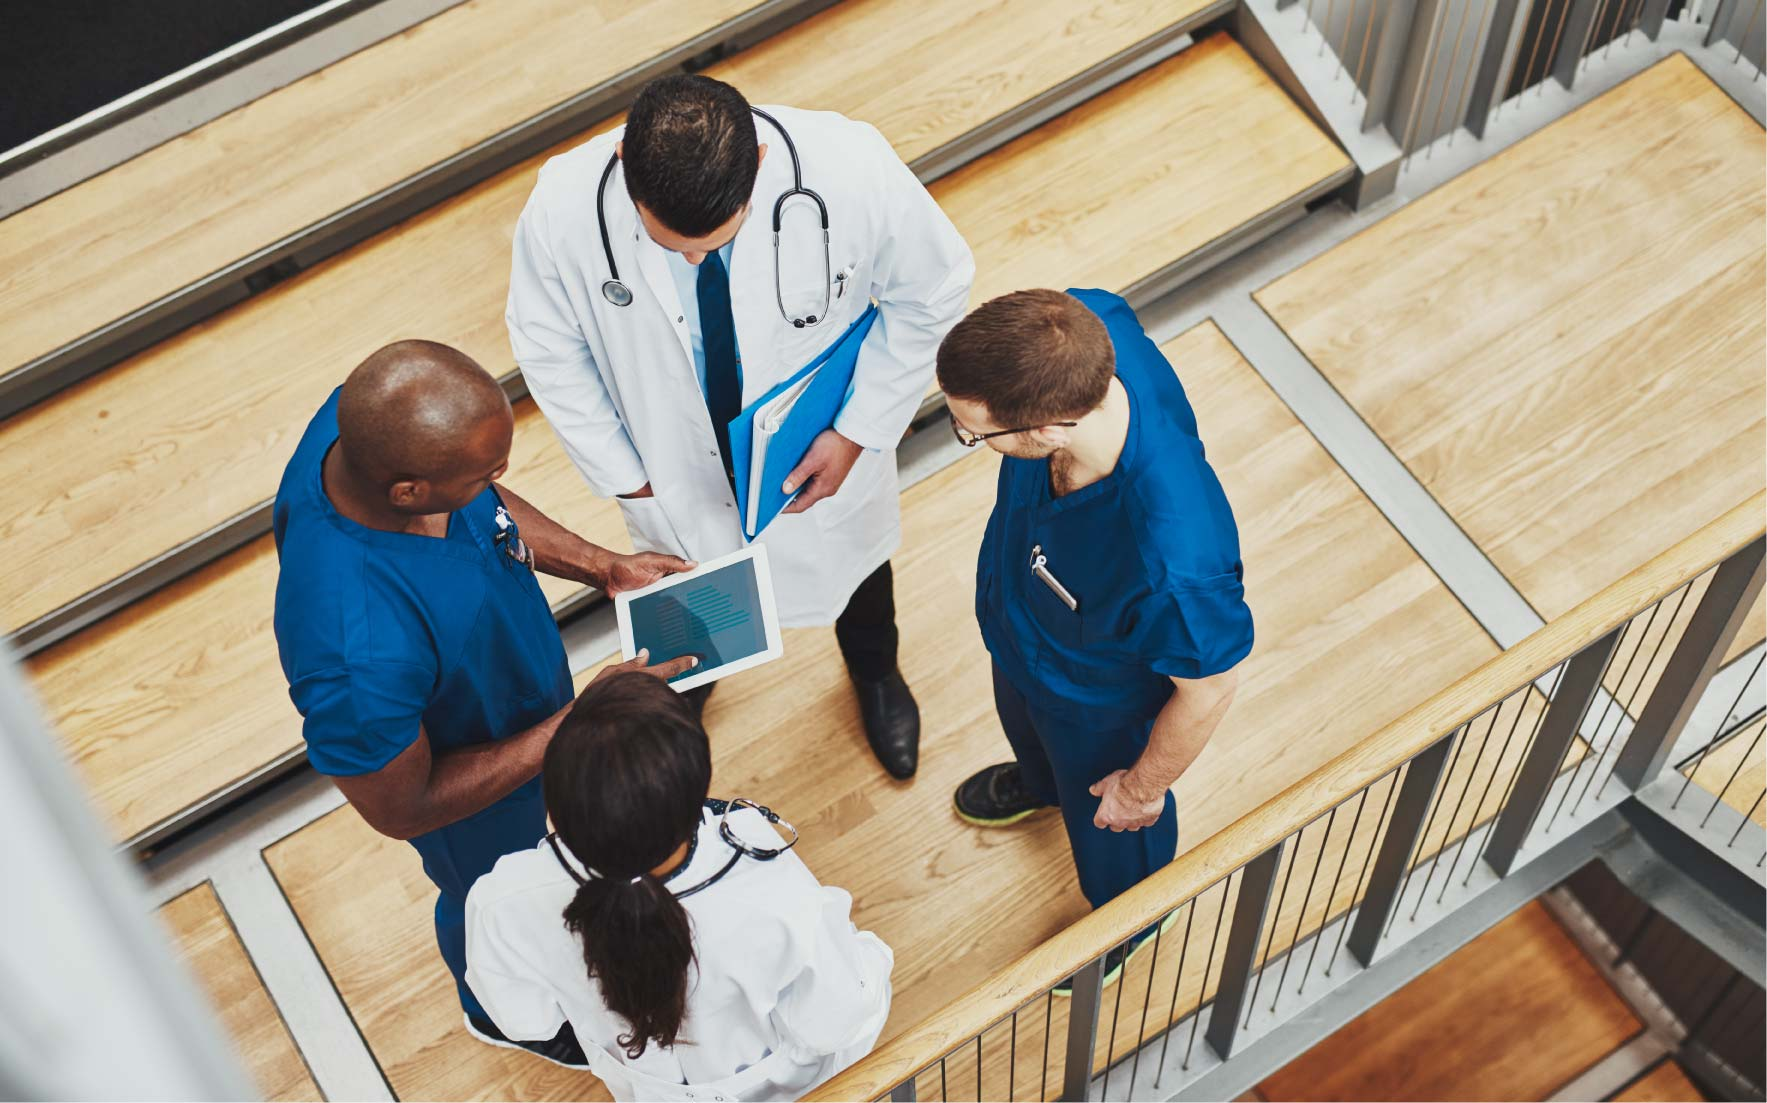 Group of medical professionals on staircase